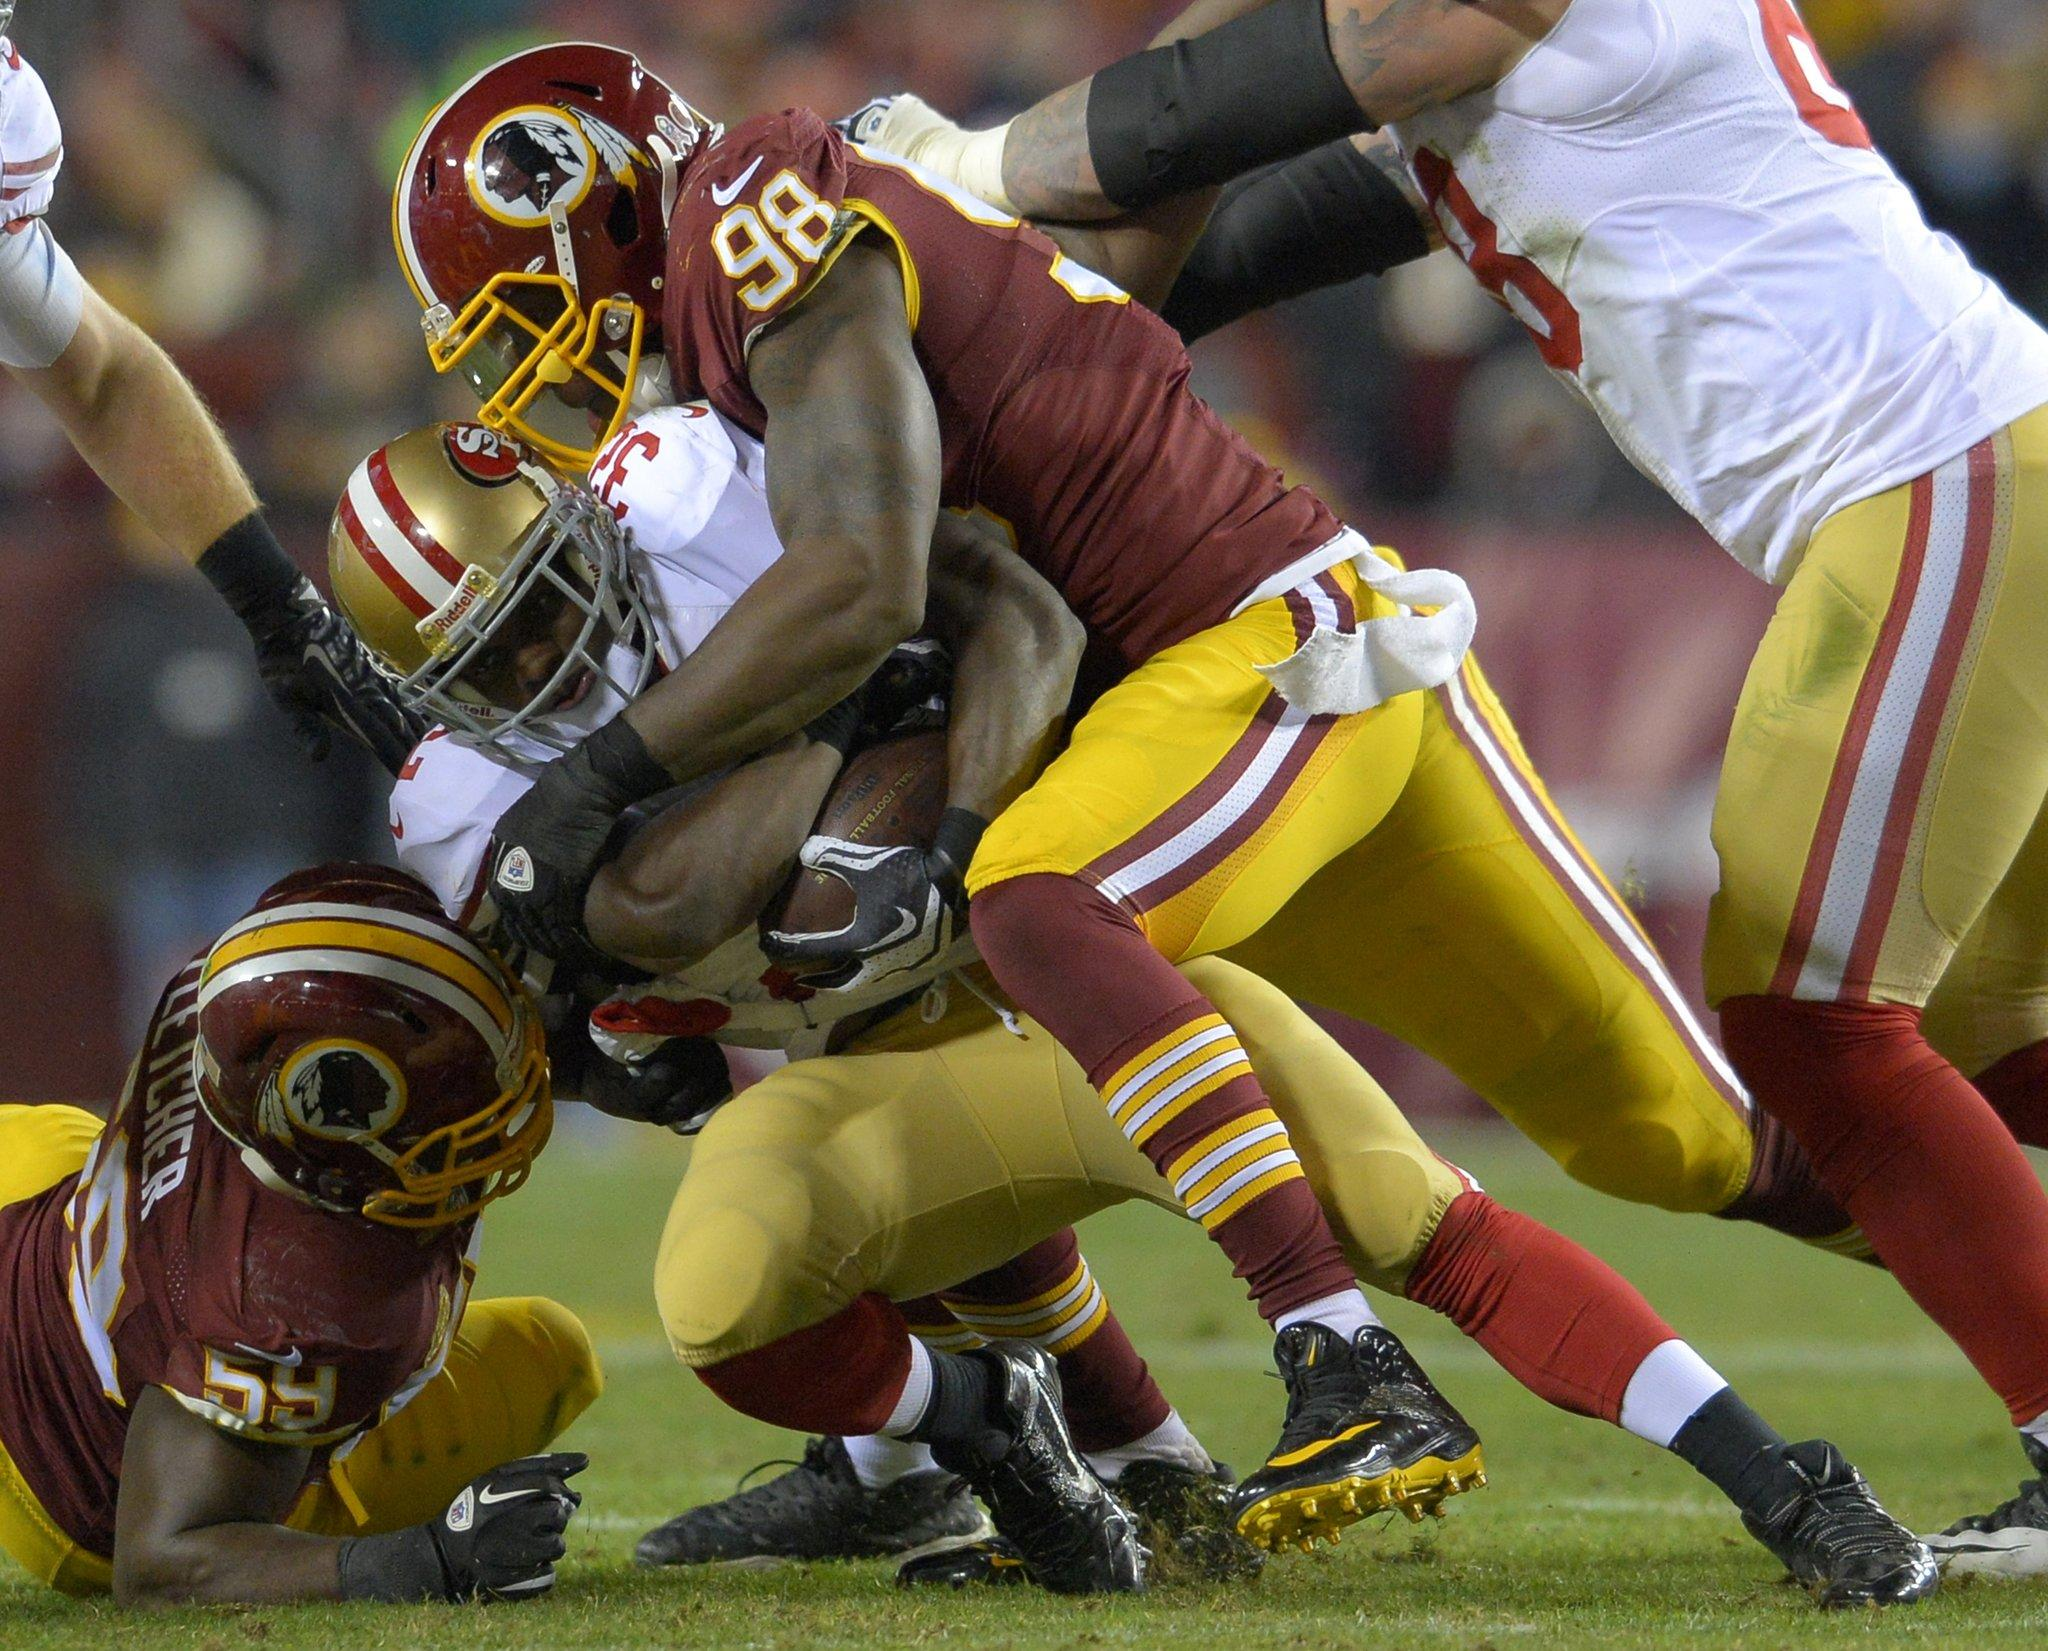 Washington Redskins outside linebacker Brian Orakpo (98) tackles San Francisco 49ers running back Kendall Hunter.